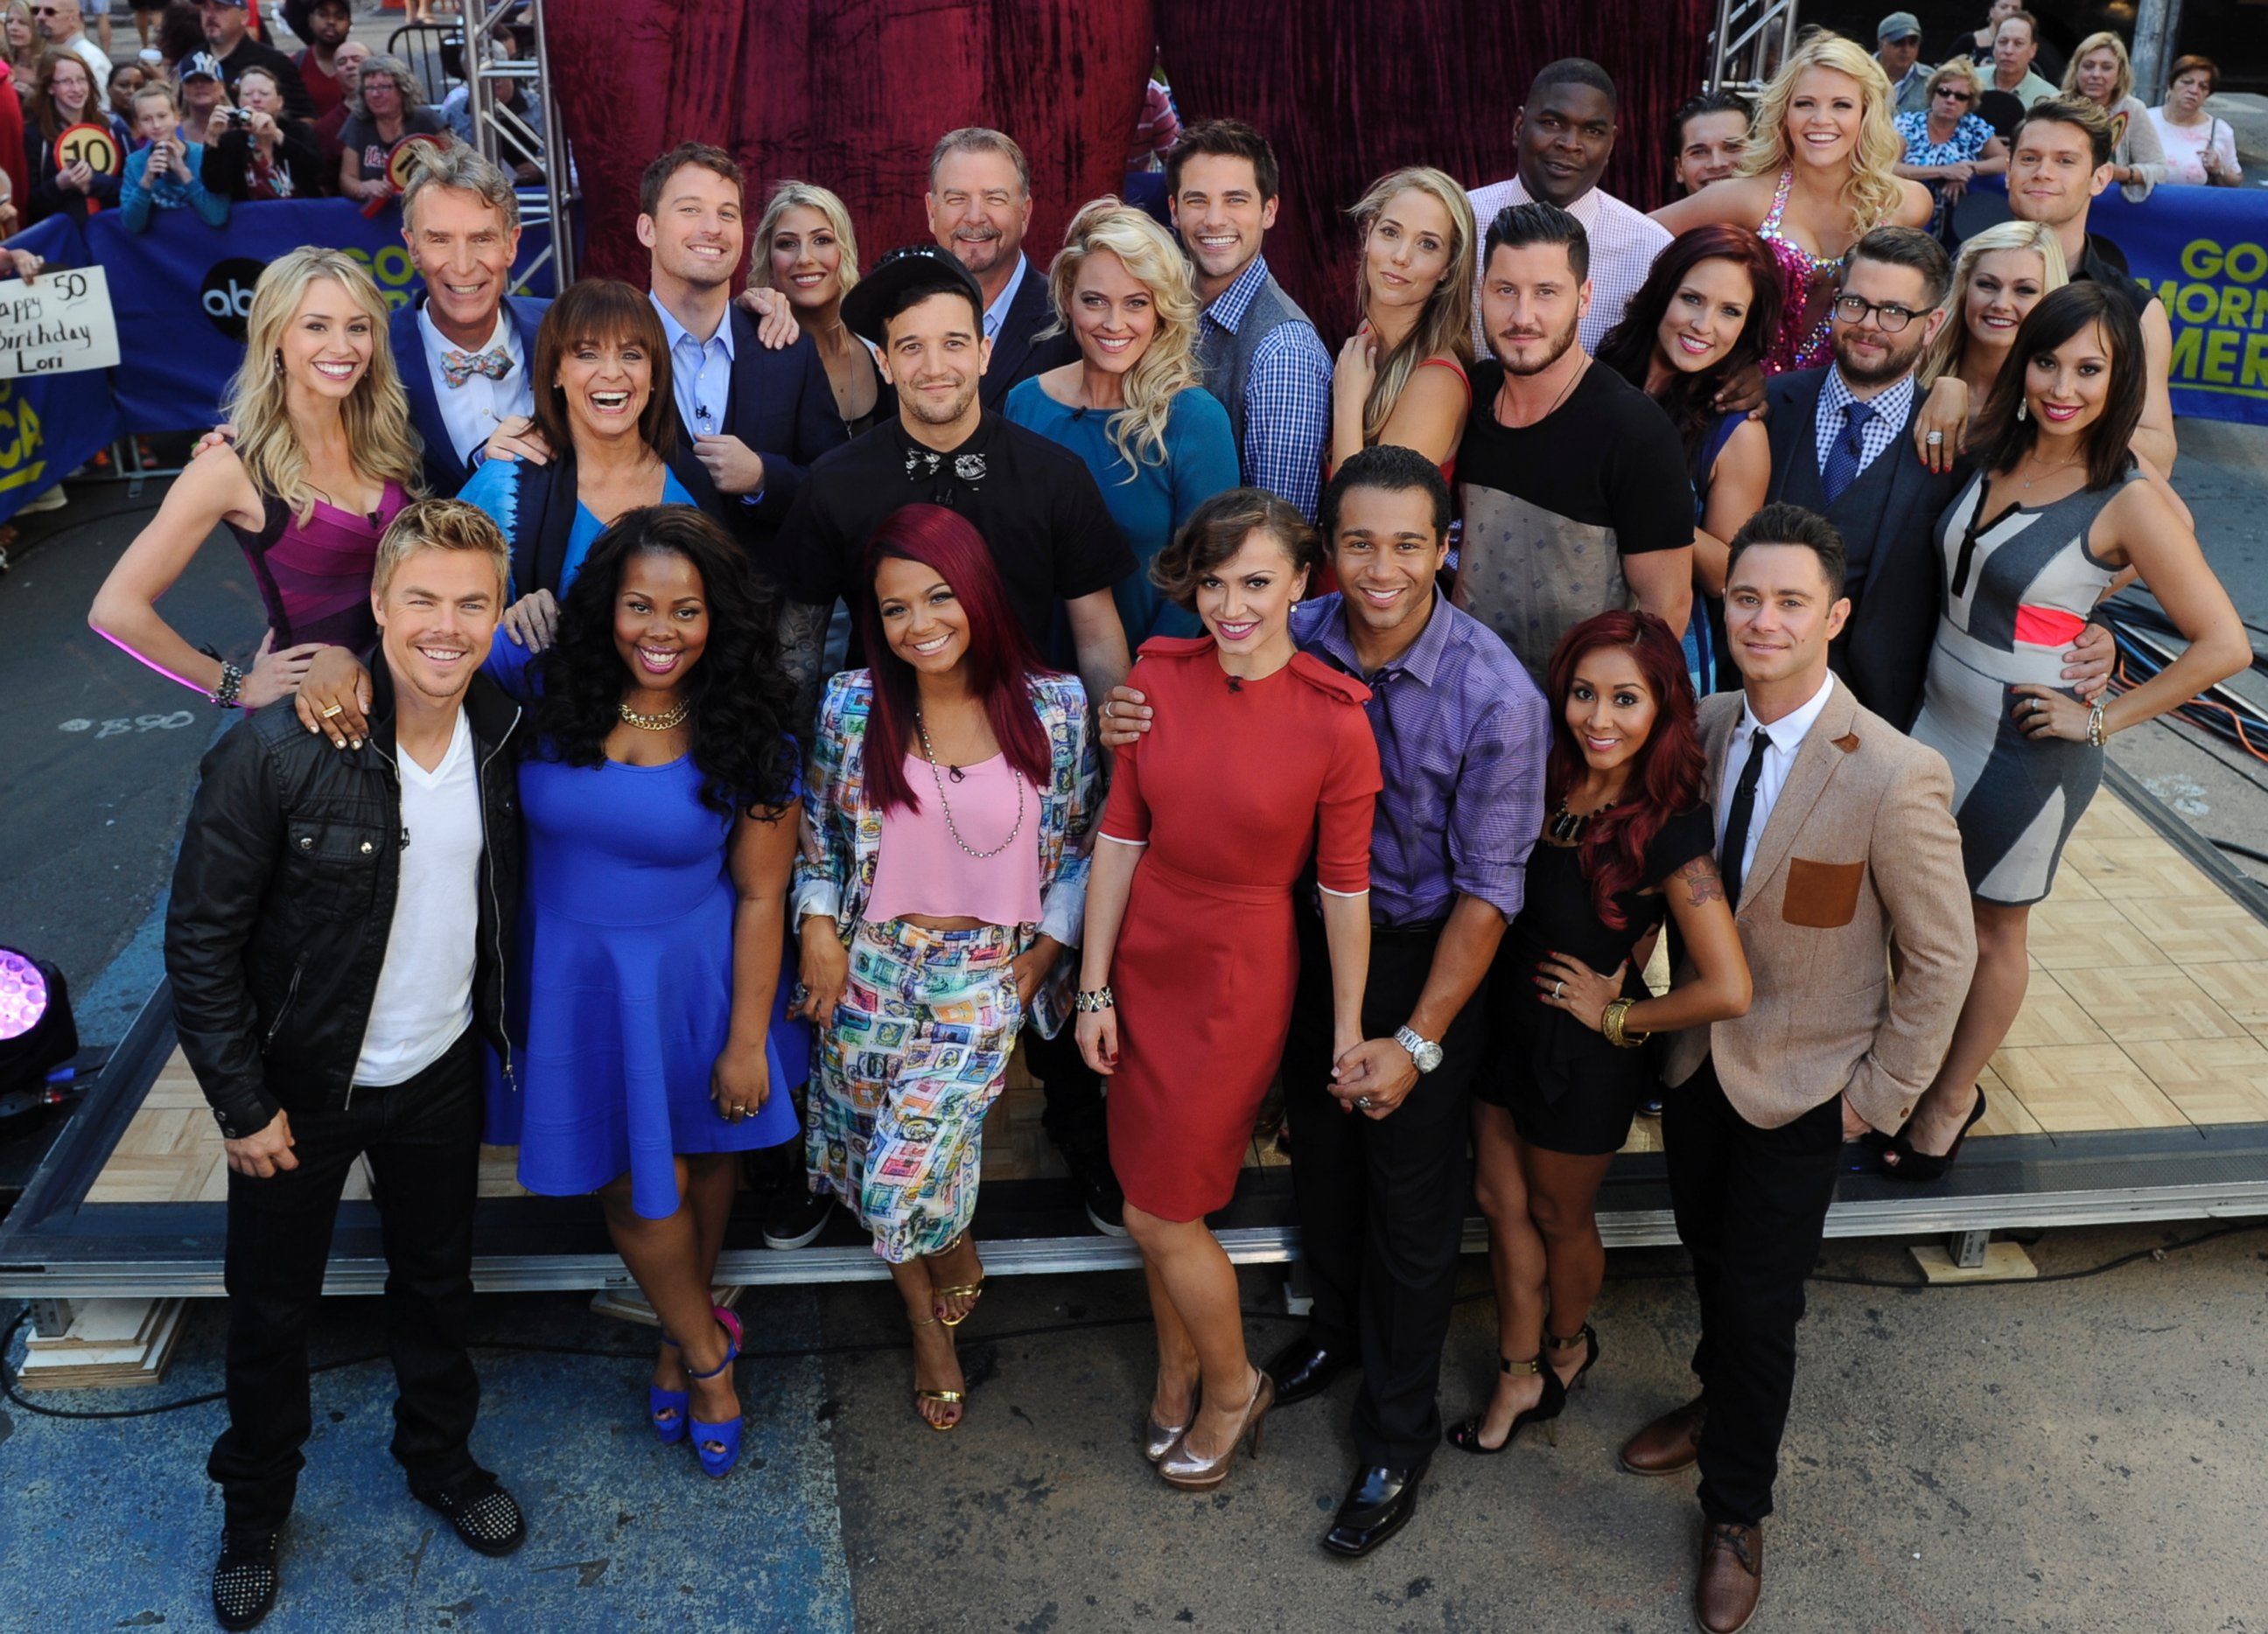 ABC cast dancing with the stars season 17 thg 130904 Dancing With the Stars: Glee Star Amber Riley Leads in Season 17 Premiere